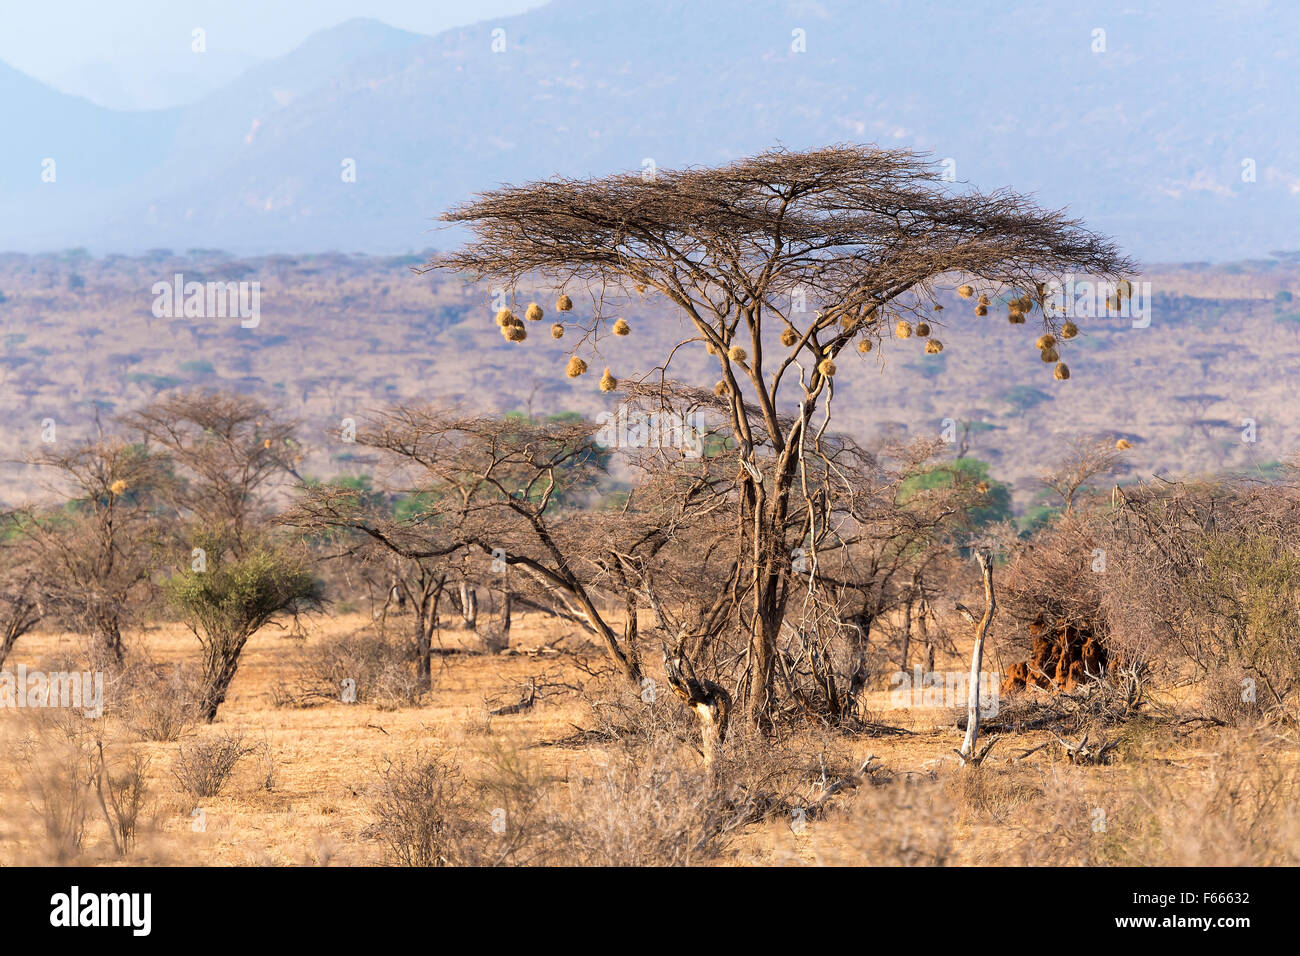 Umbrella Thorn Acacia Vachellia Tortilis With Weaver Ploceidae